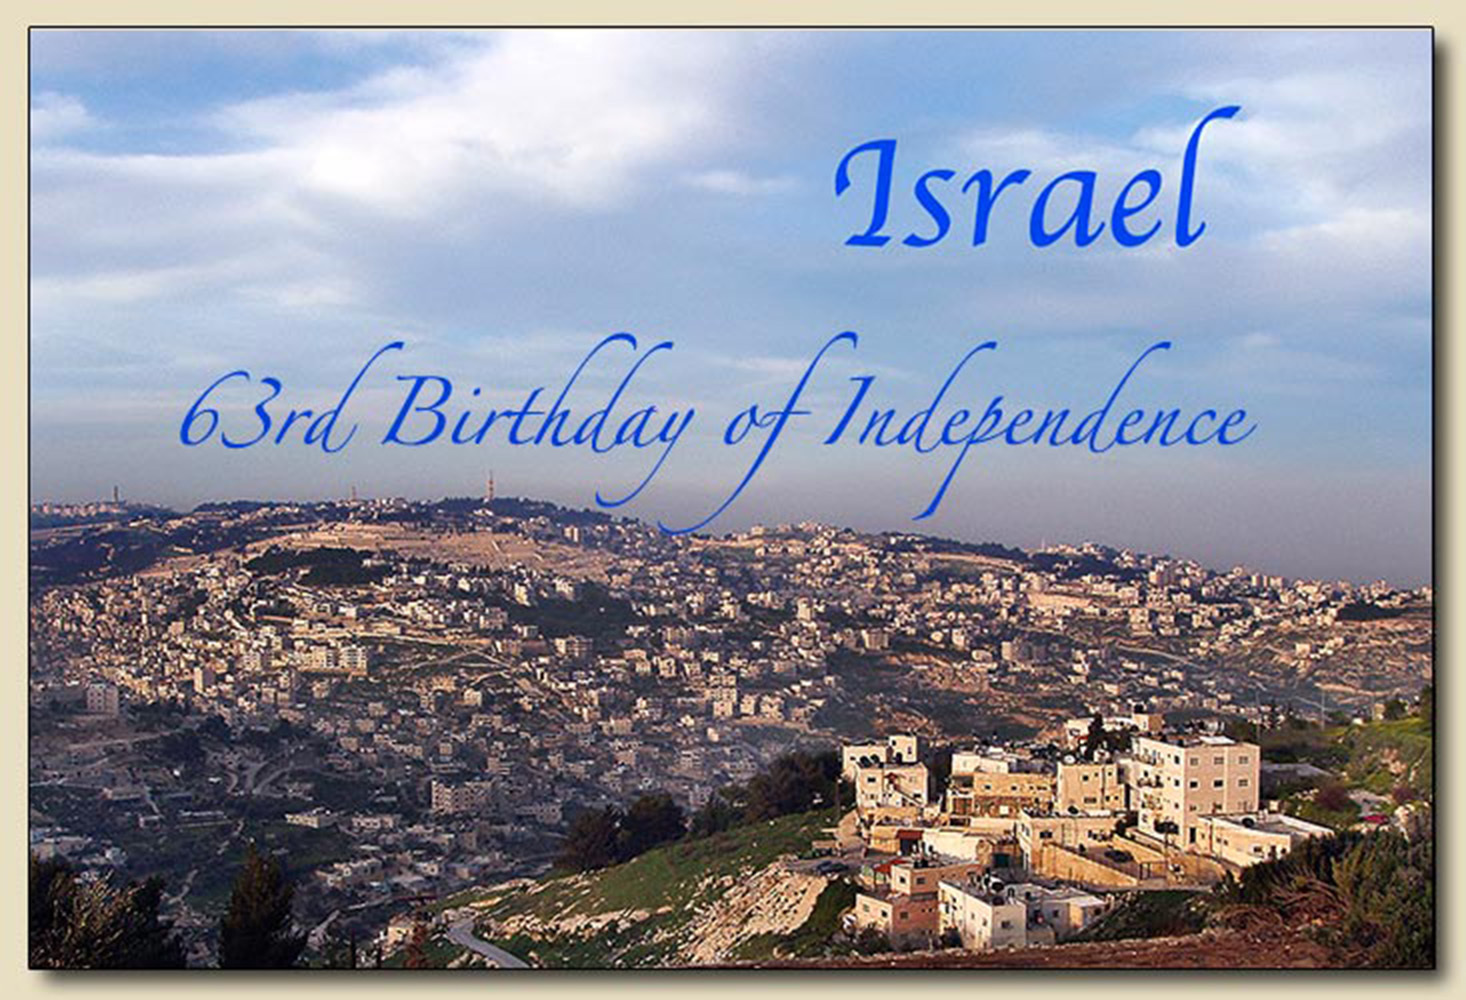 Israel's 63rd Birthday of Independence - May 10, 2011